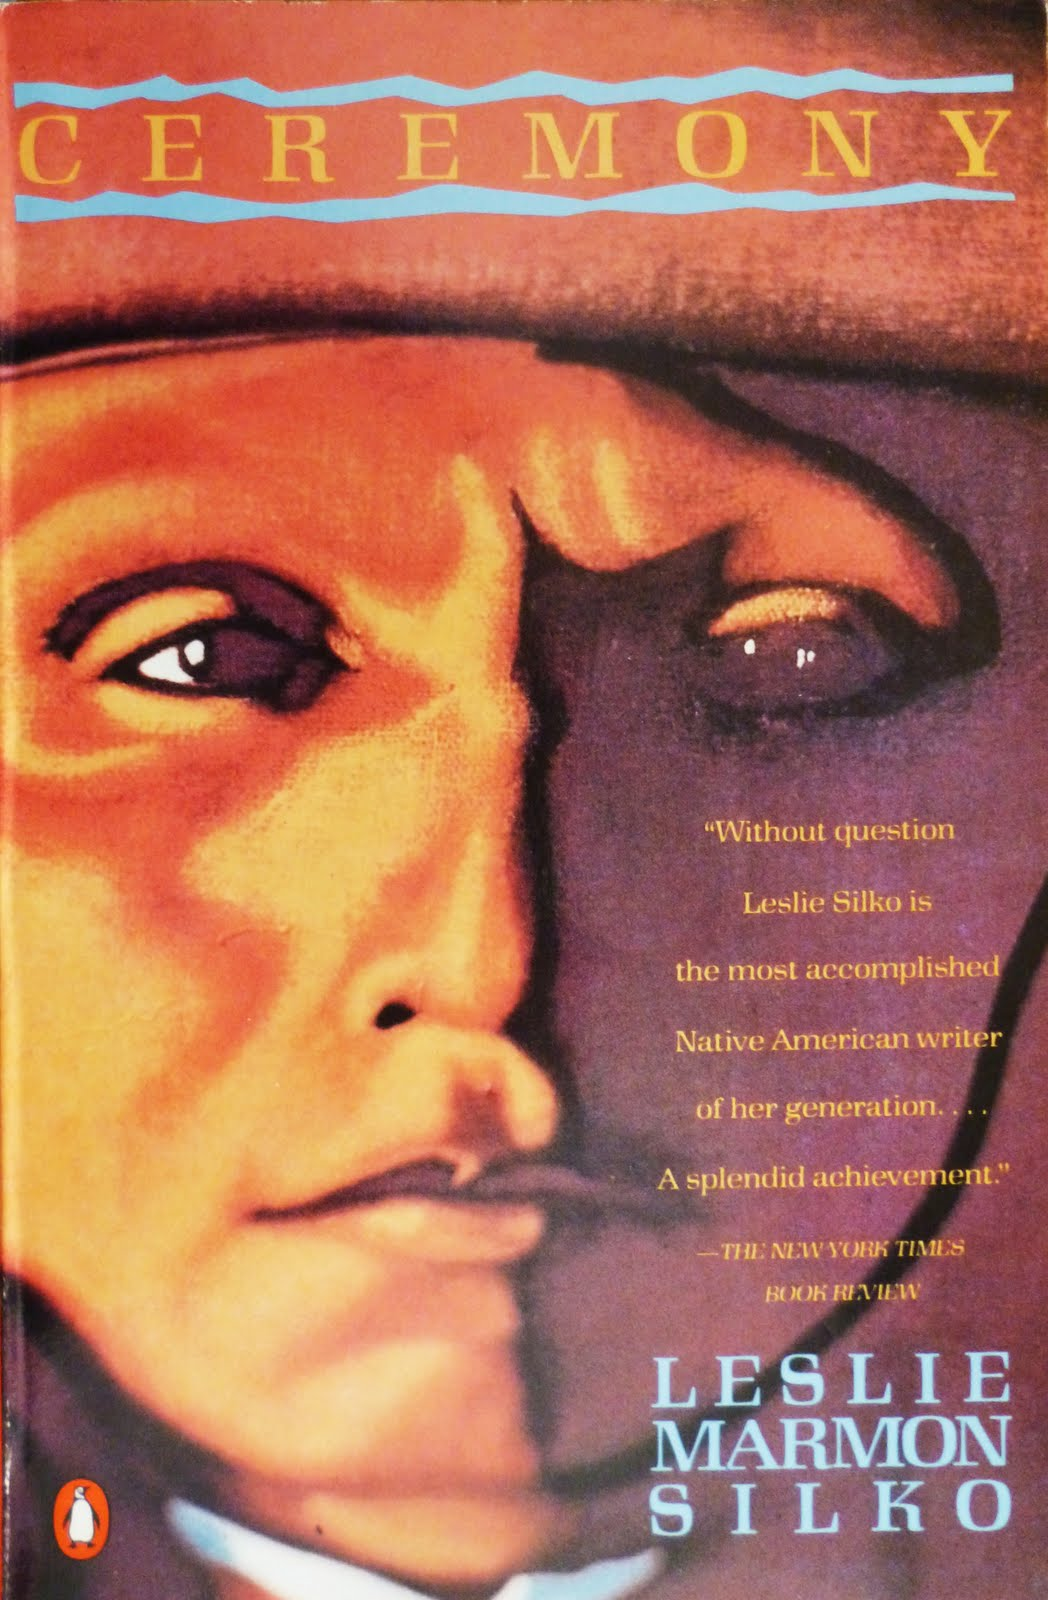 a review of leslie marmon silkos ceremony Ceremony by leslie marmon silko (review) jack l davis western american literature, volume 12, number 3, fall 1977, pp 242-243 (review) published by university of nebraska press.